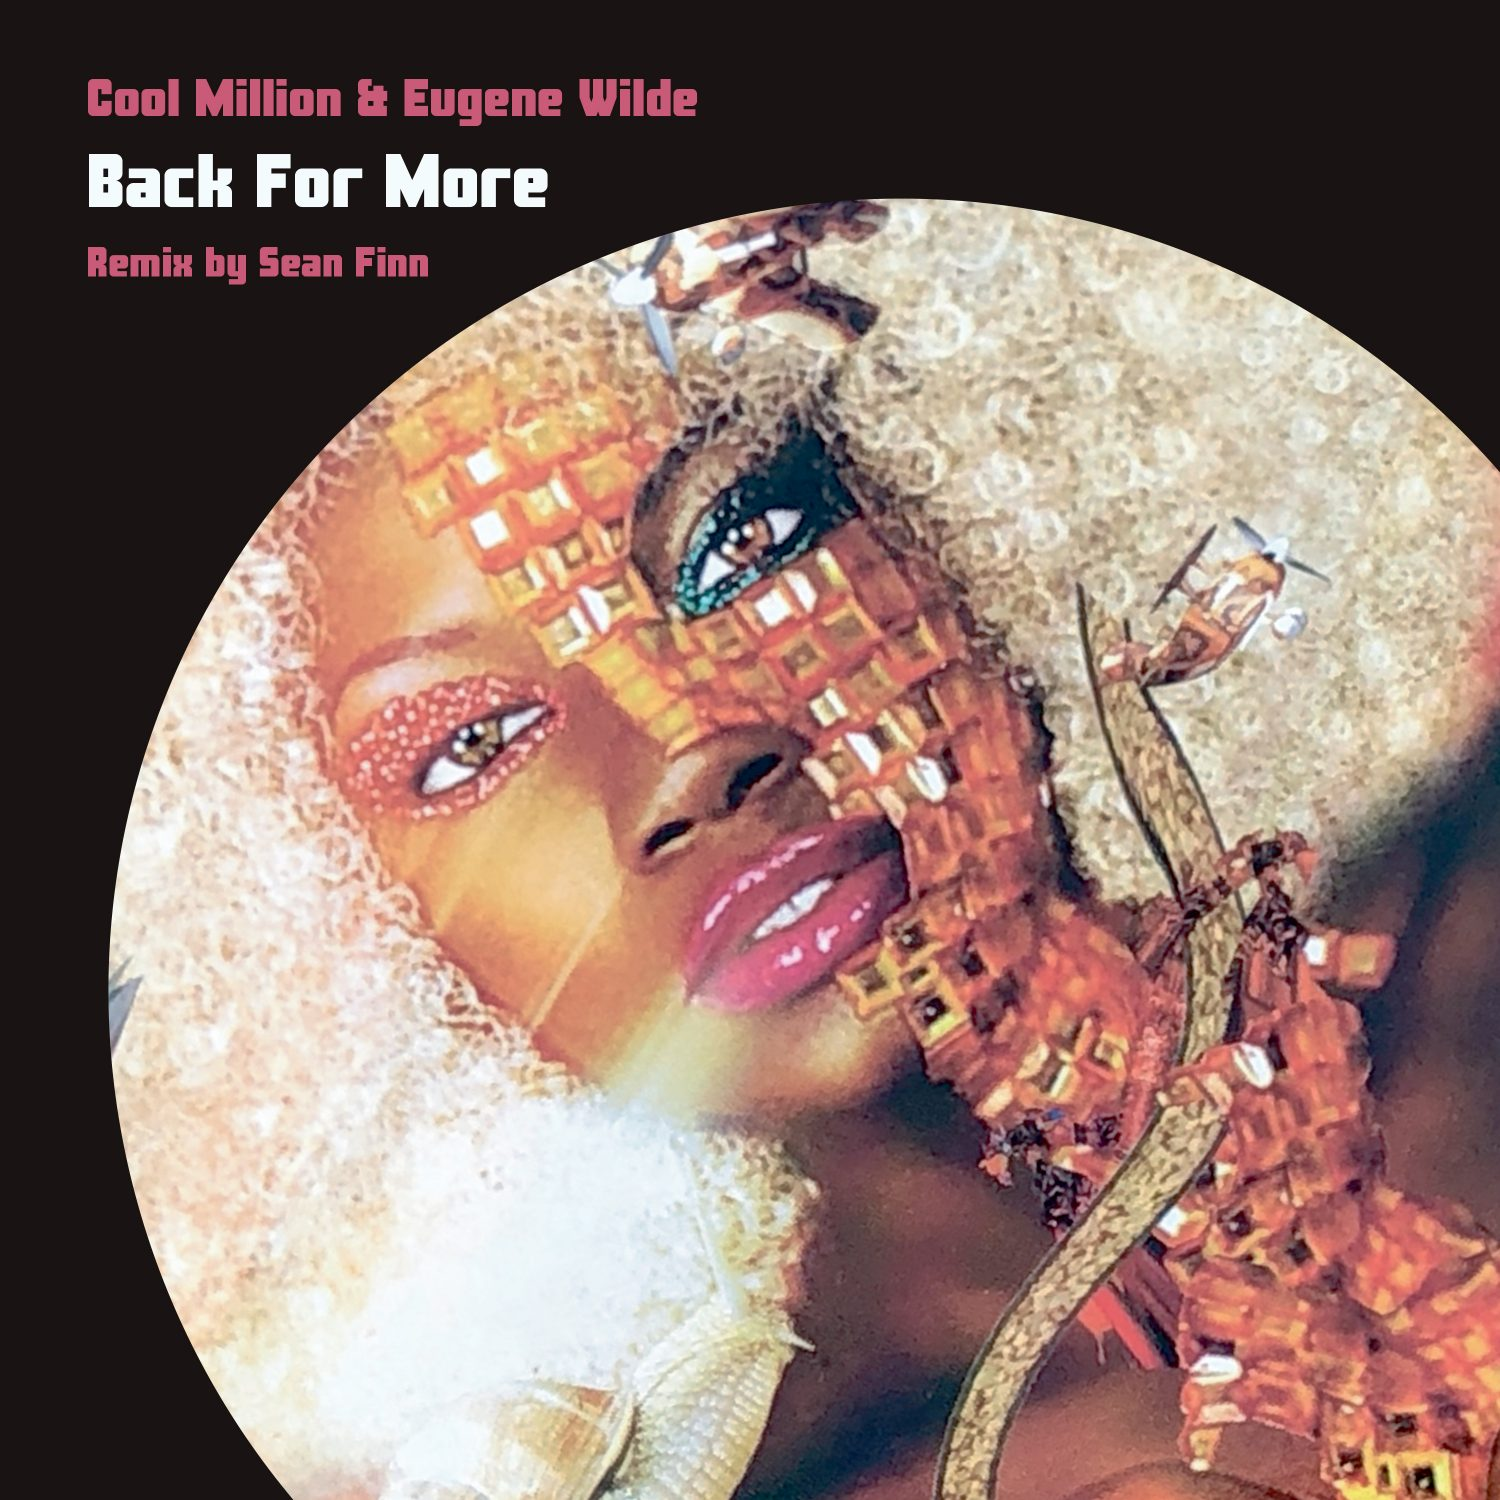 Cool Million & Eugene Wilde - Back For More (Sean Finn Remix)